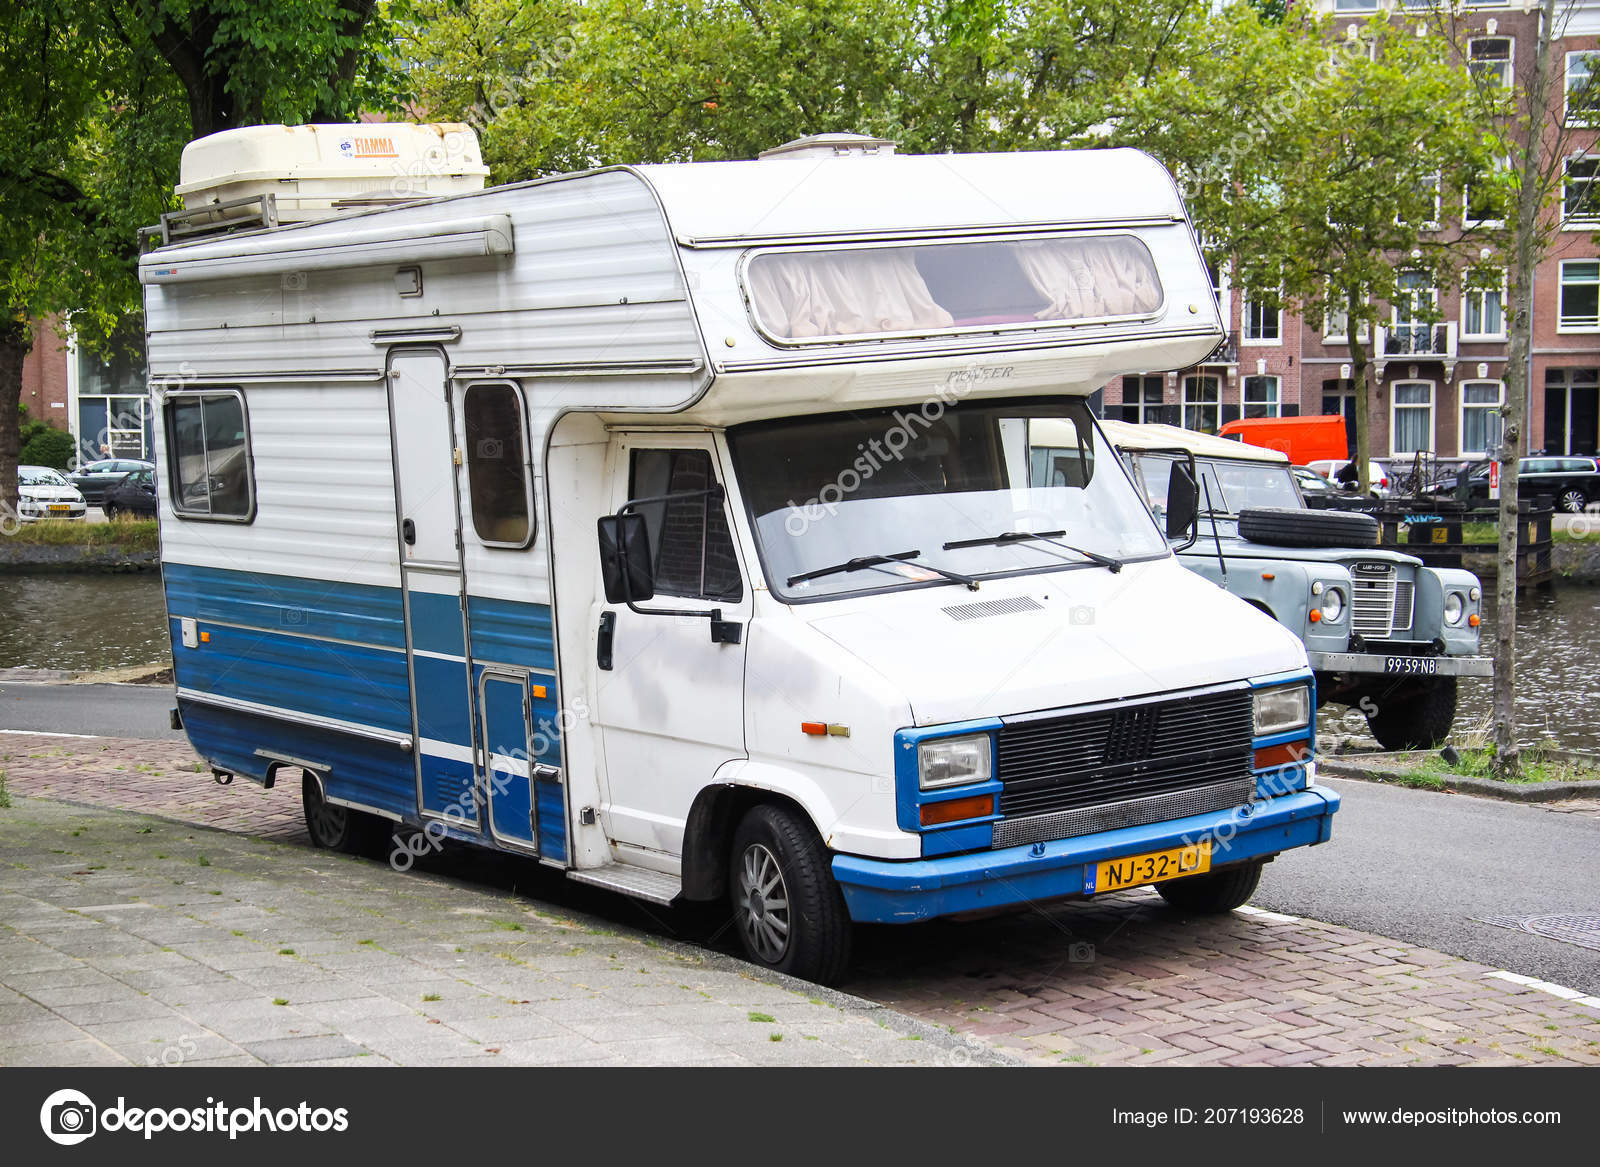 Amsterdam Netherlands August 2014 Old Campervan Fiat Ducato City Street Stock Editorial Photo C Artzzz 207193628